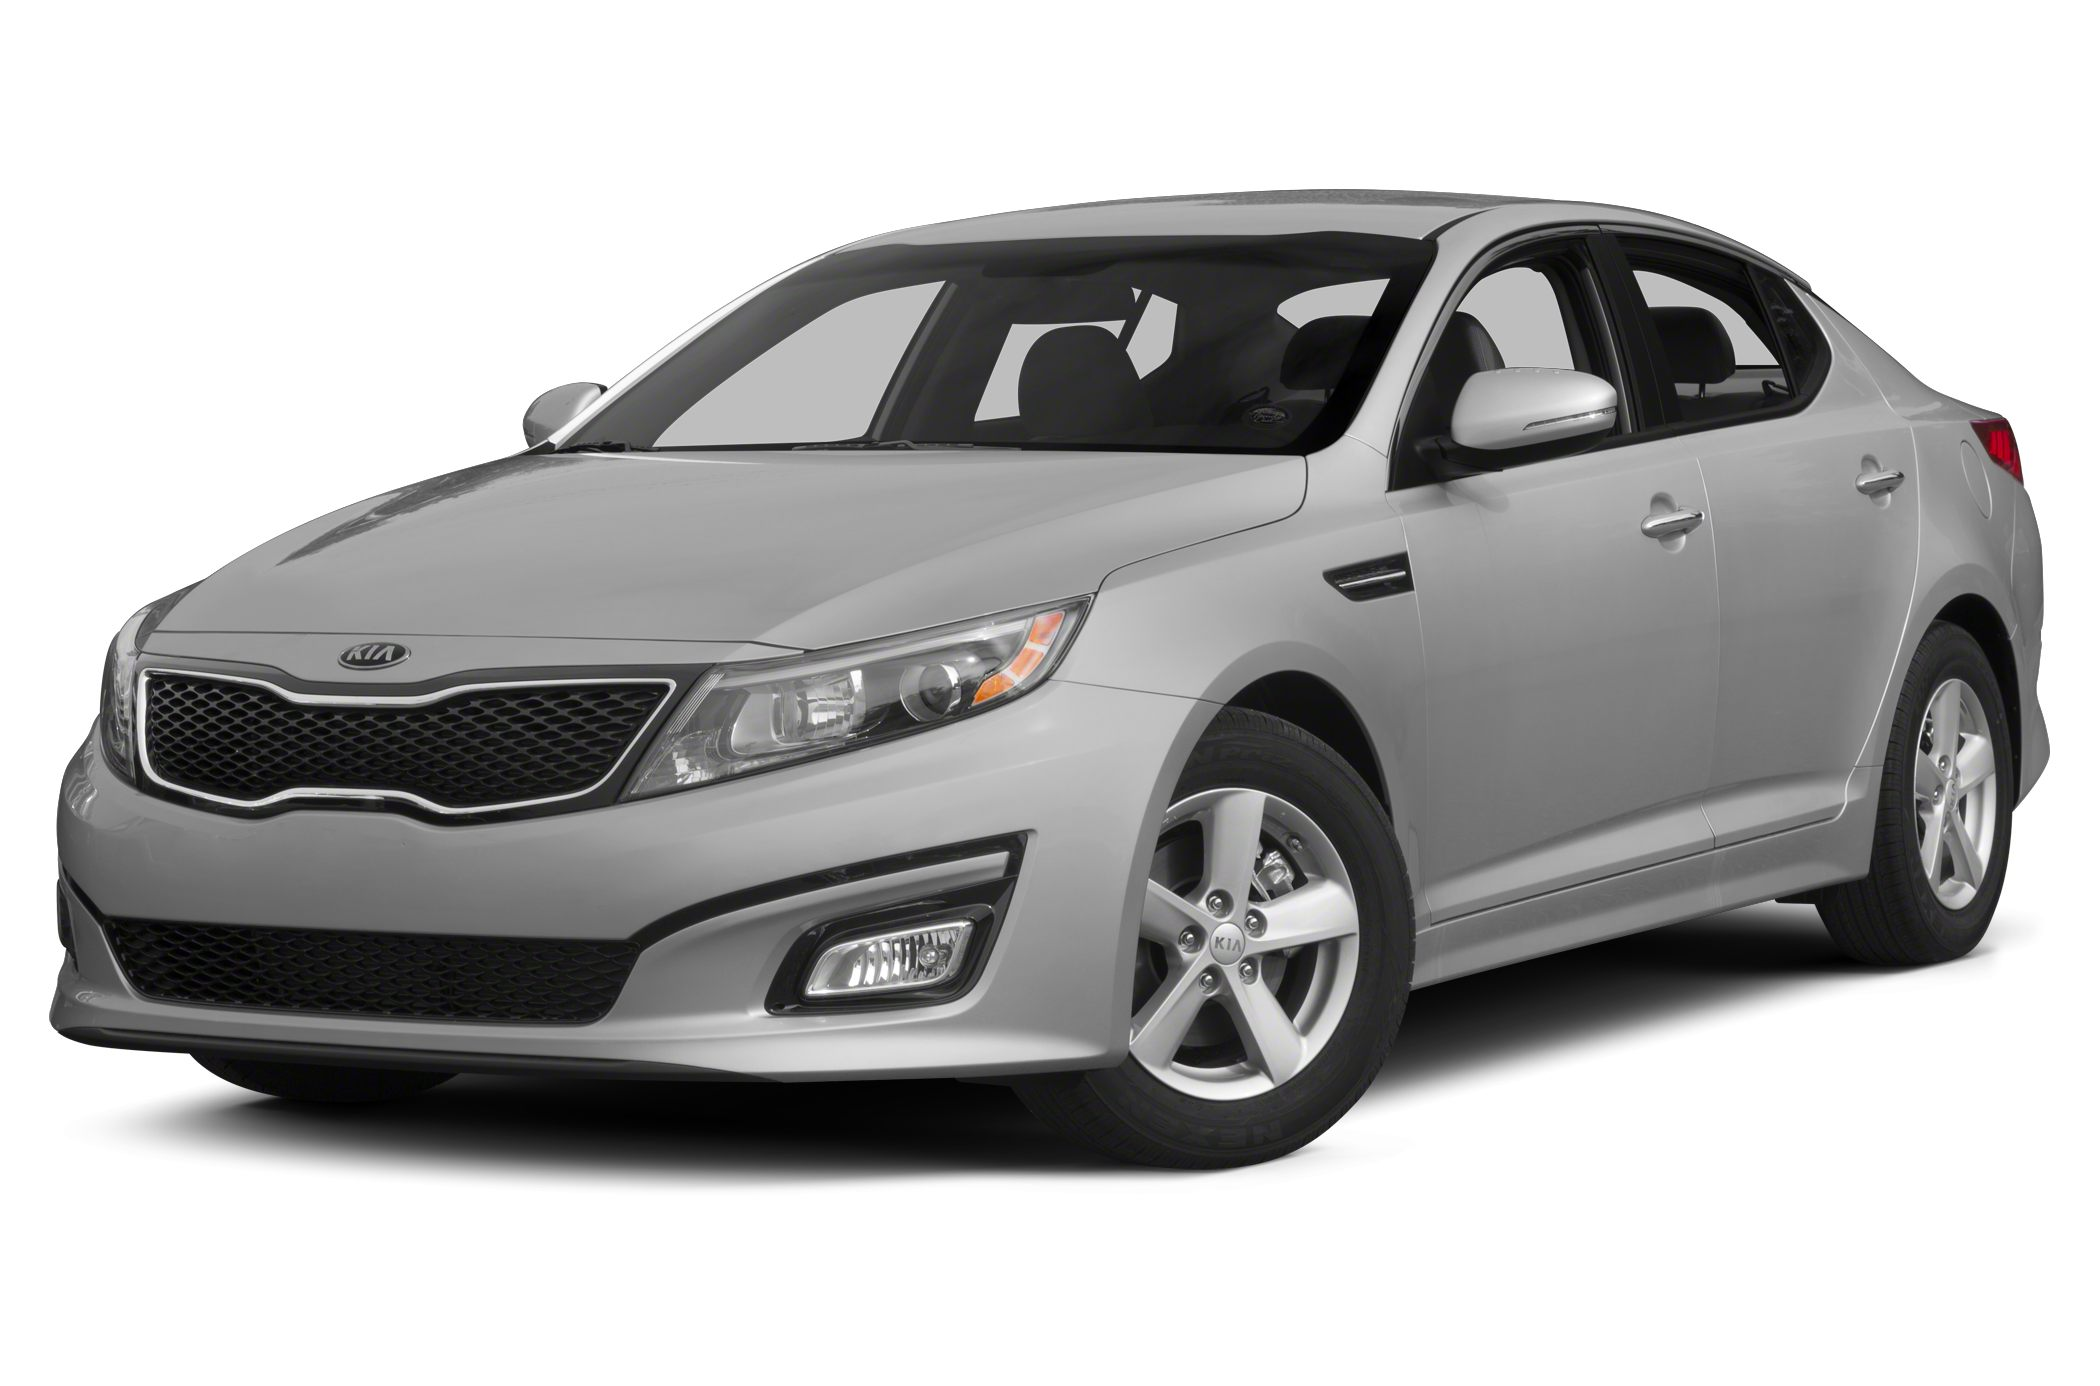 2015 Kia Optima LX Miles 10212Color Gray Stock K15178A VIN 5XXGM4A70FG394919